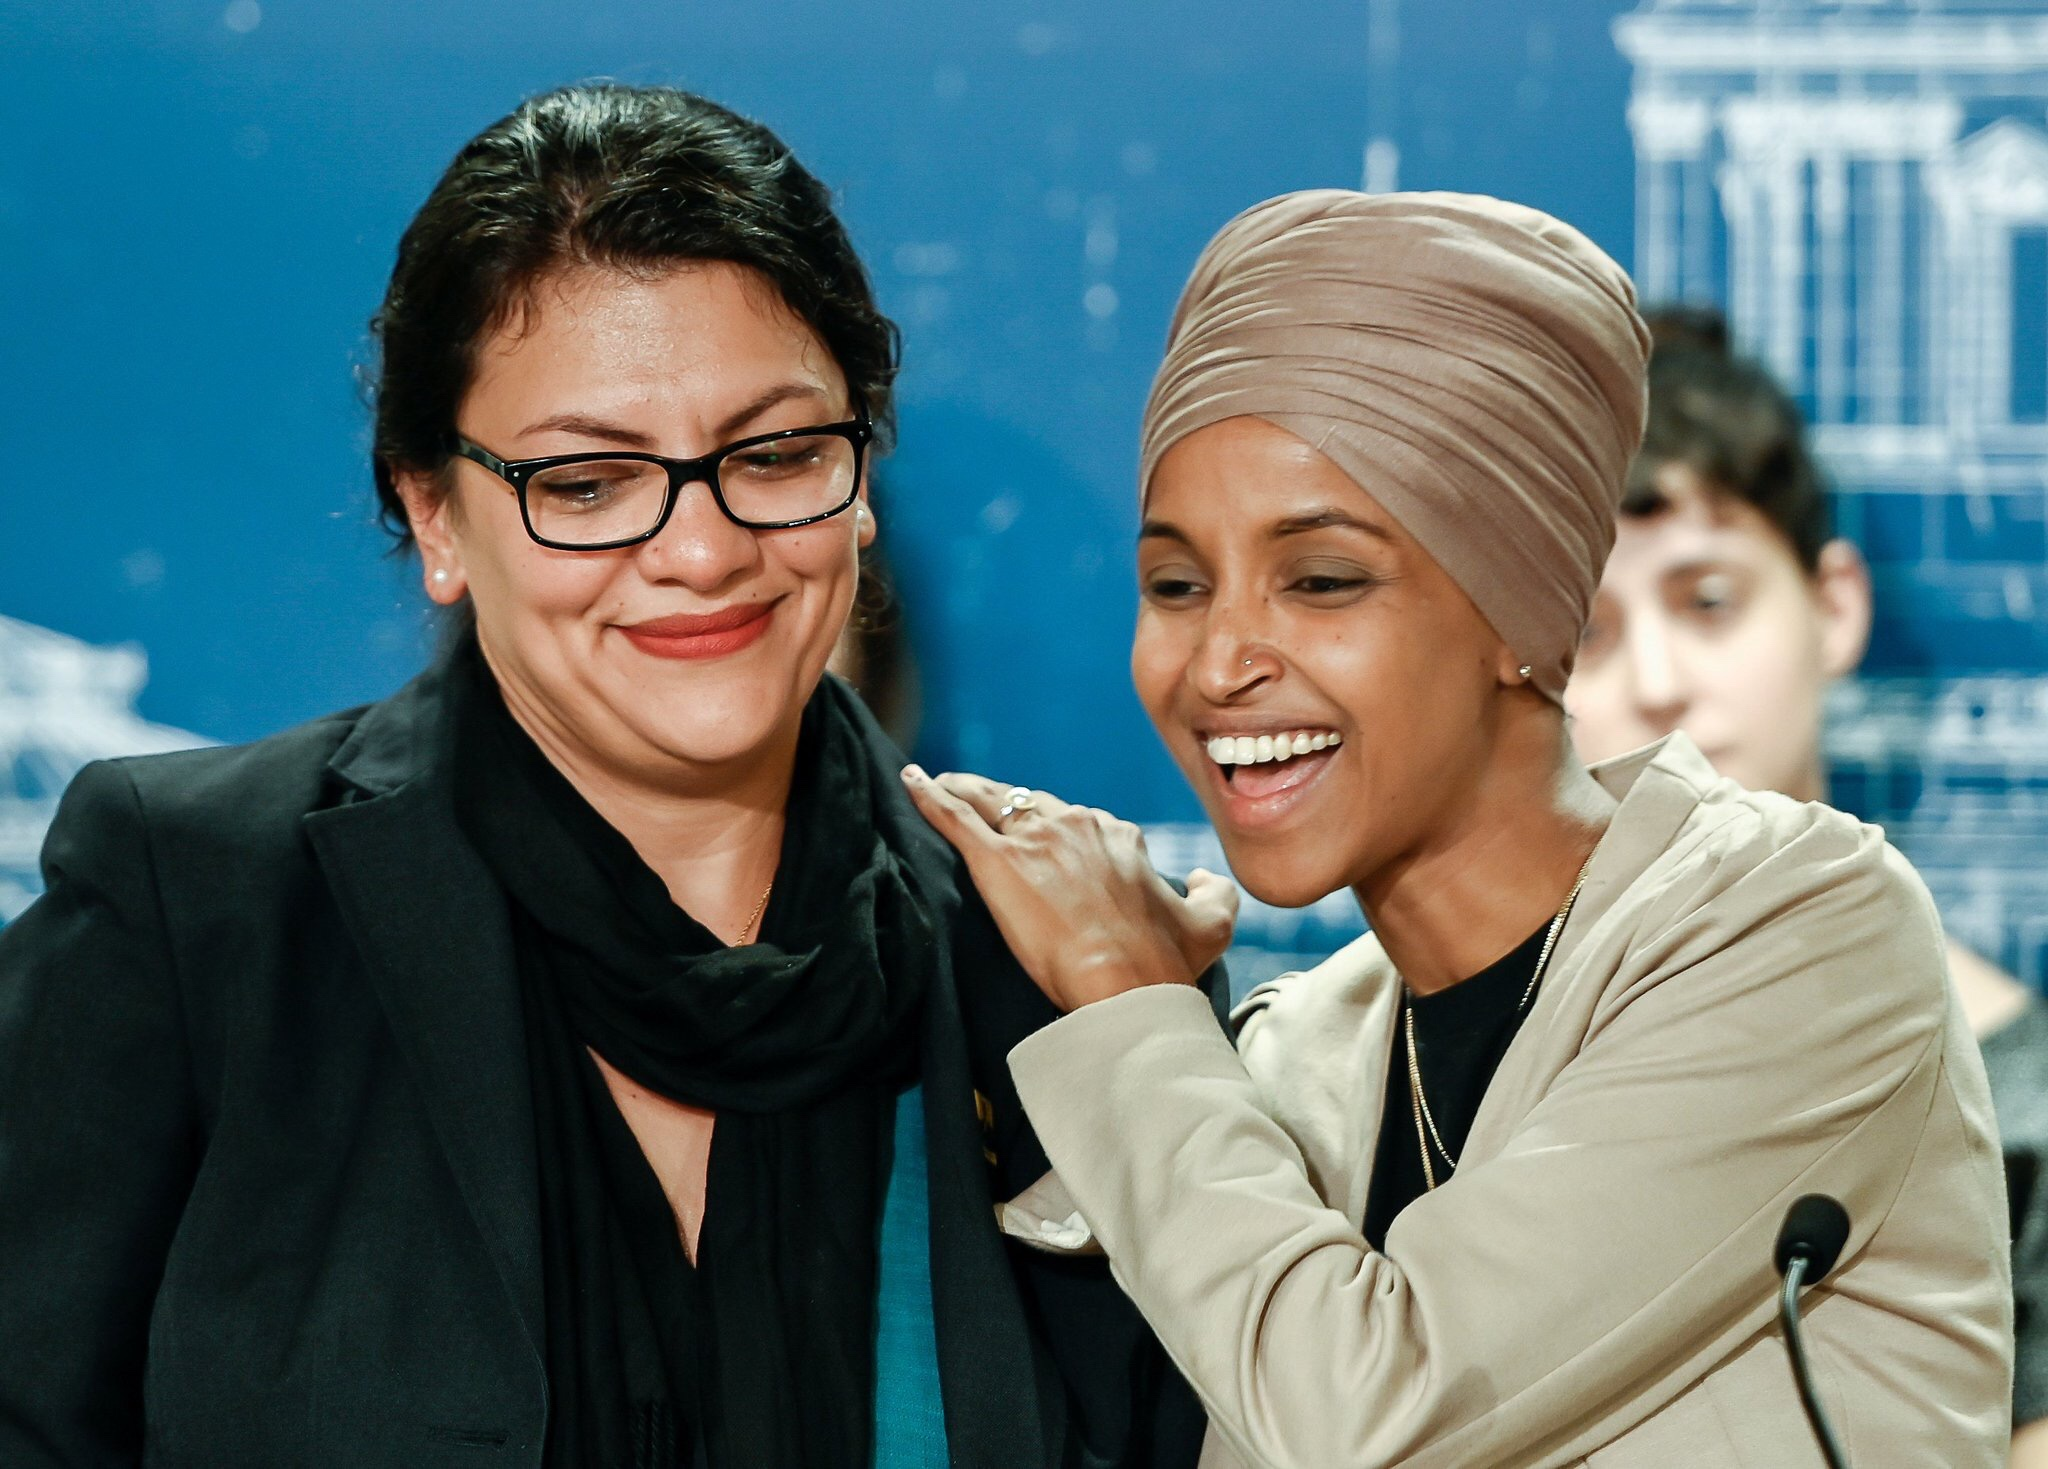 Ilhan Omar and Rashida Tlaib respond after being barred entry into Israel